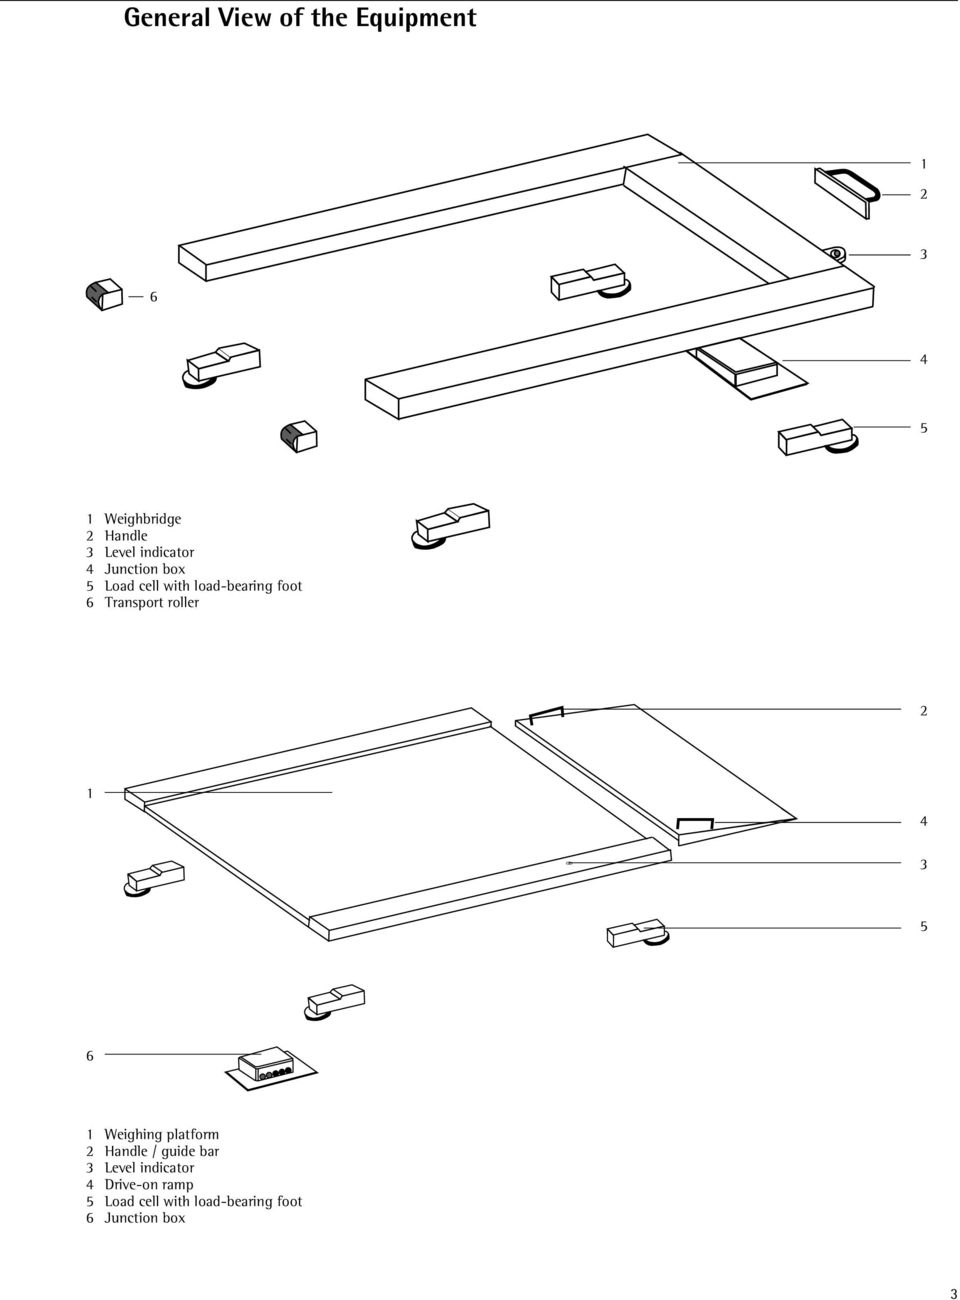 roller 2 1 4 3 5 6 1 Weighing platform 2 Handle / guide bar 3 Level